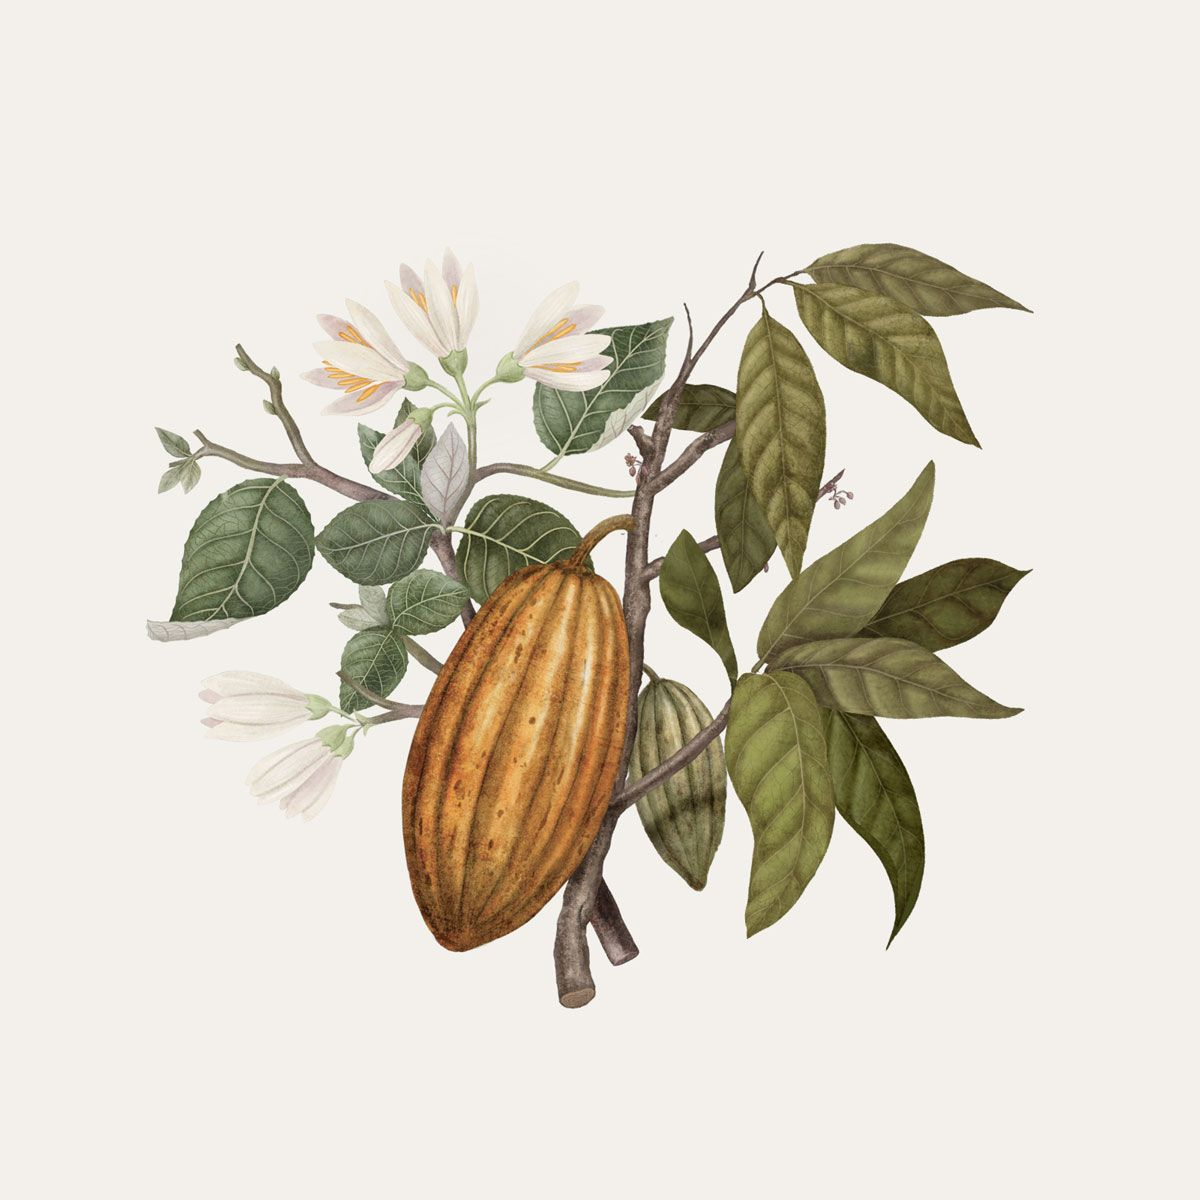 Benzoin and Cacao